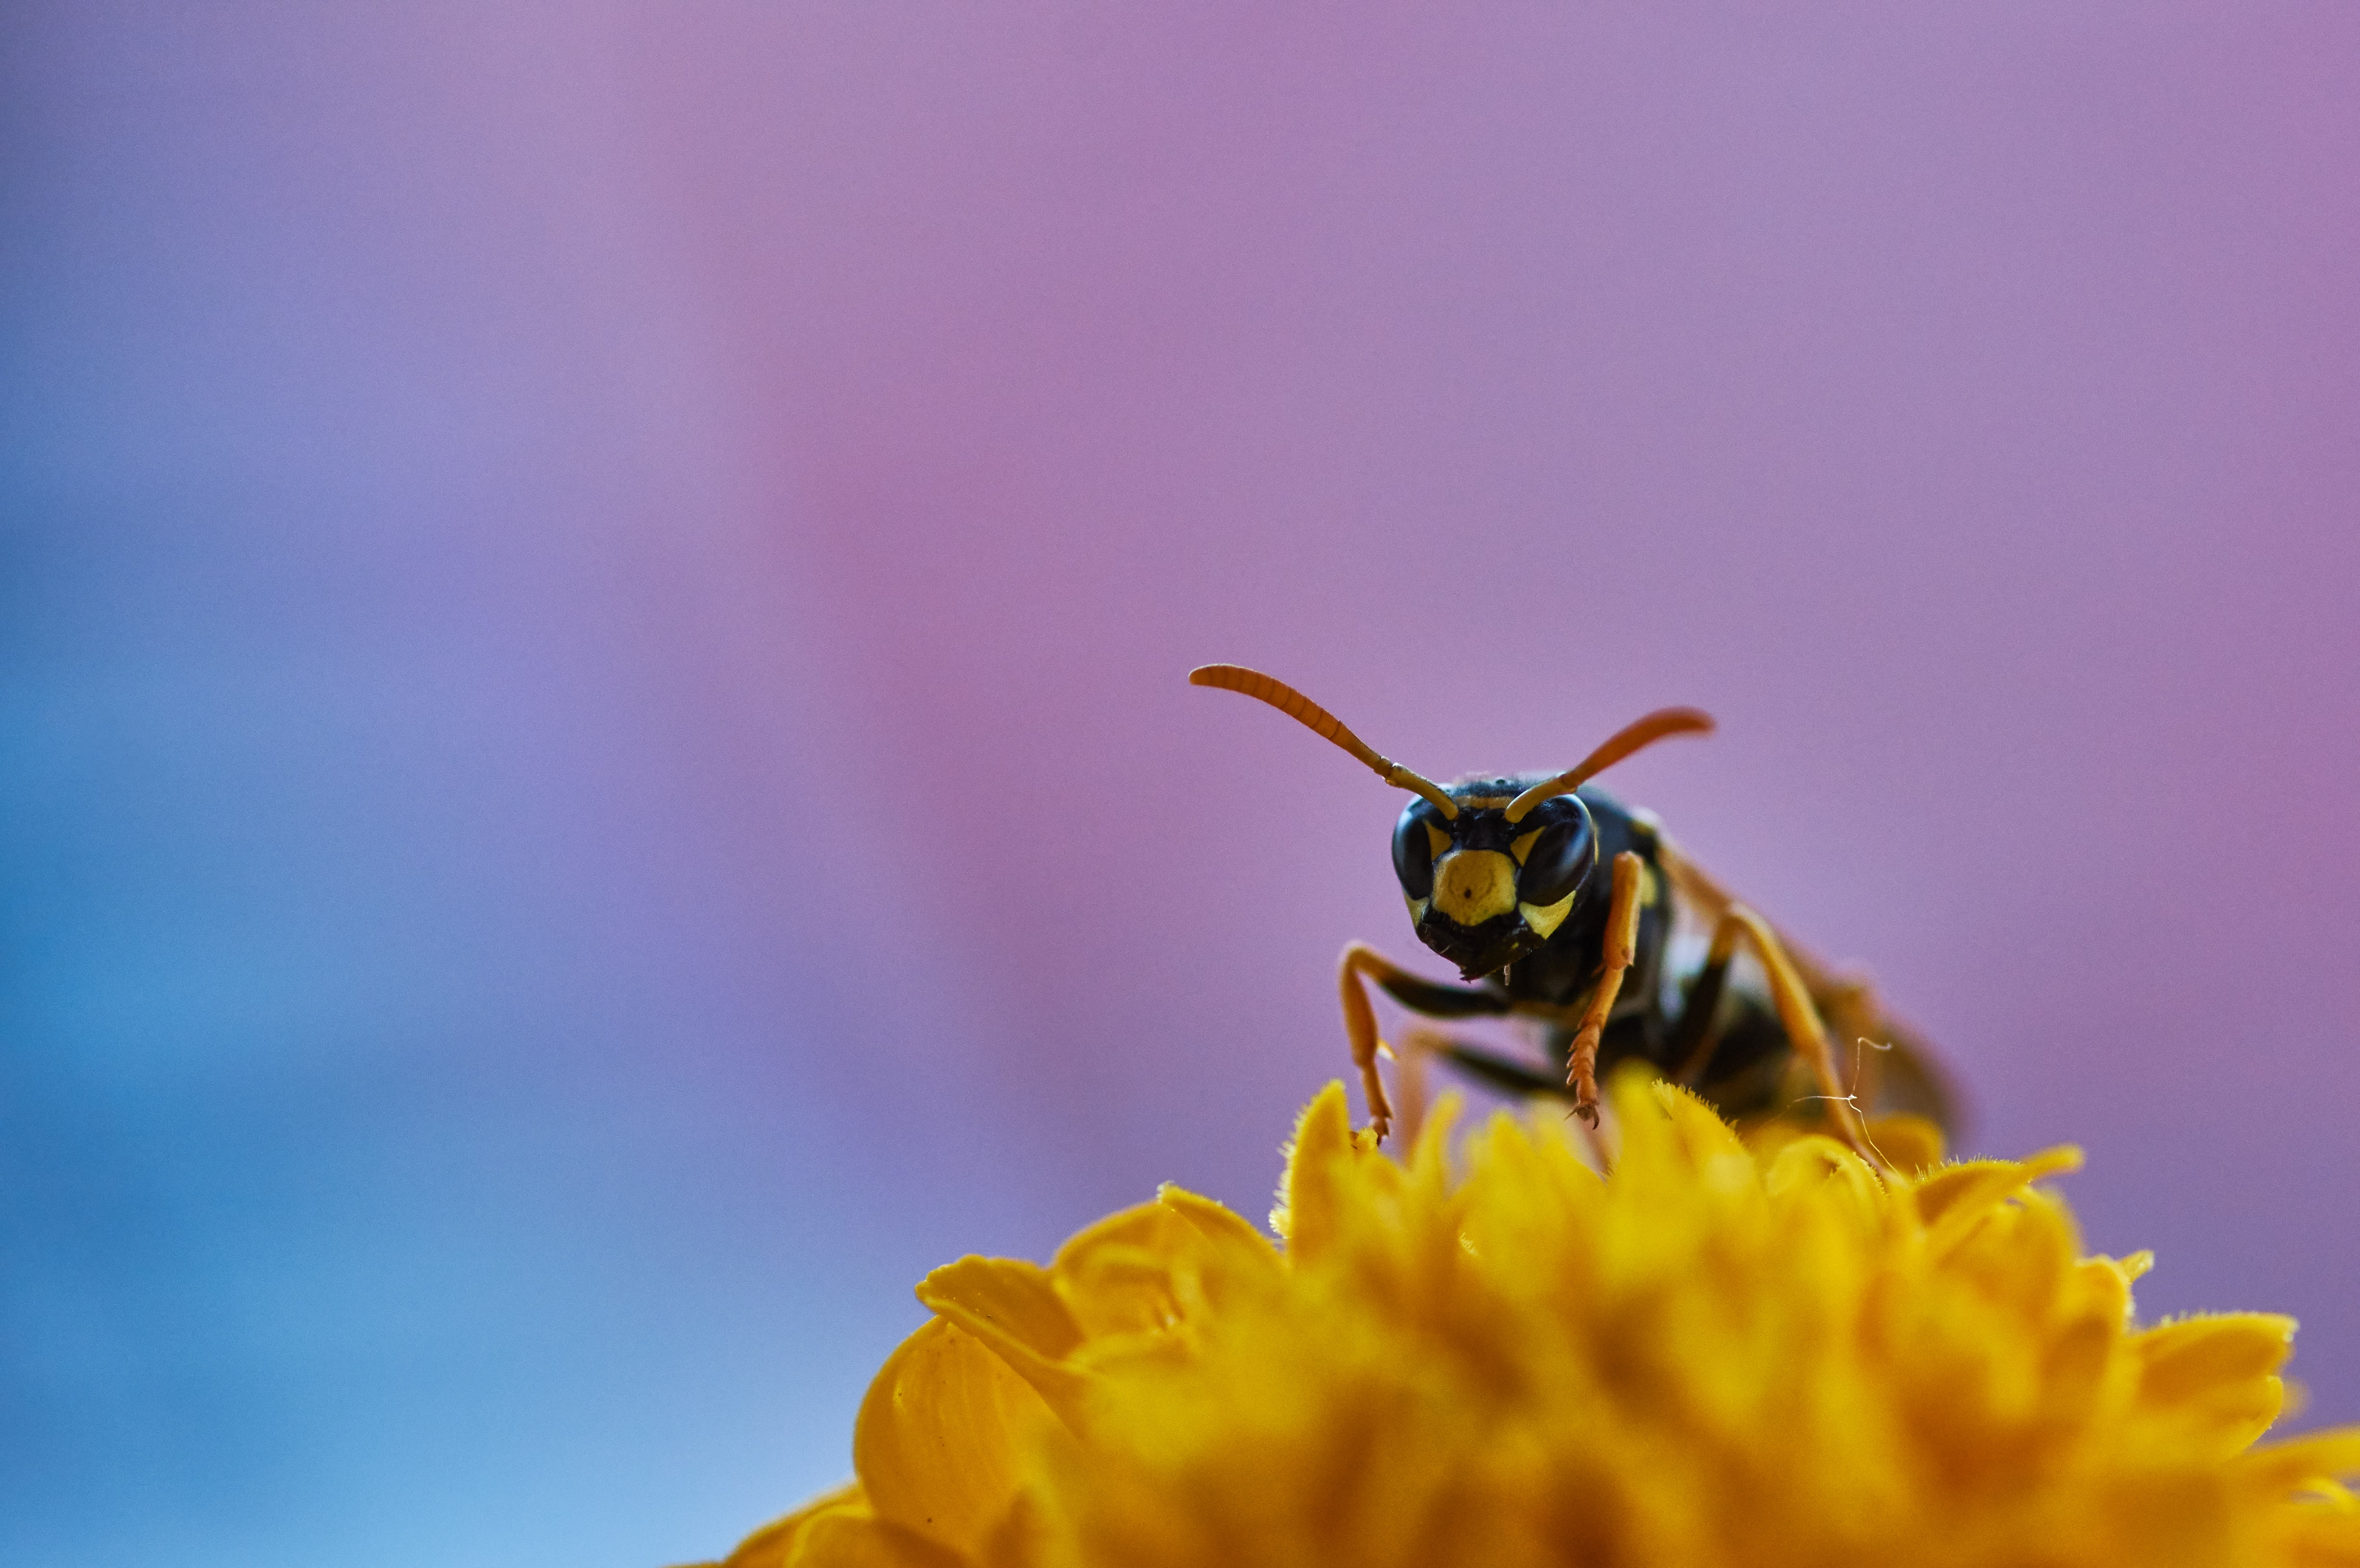 a wasp pearching on flower